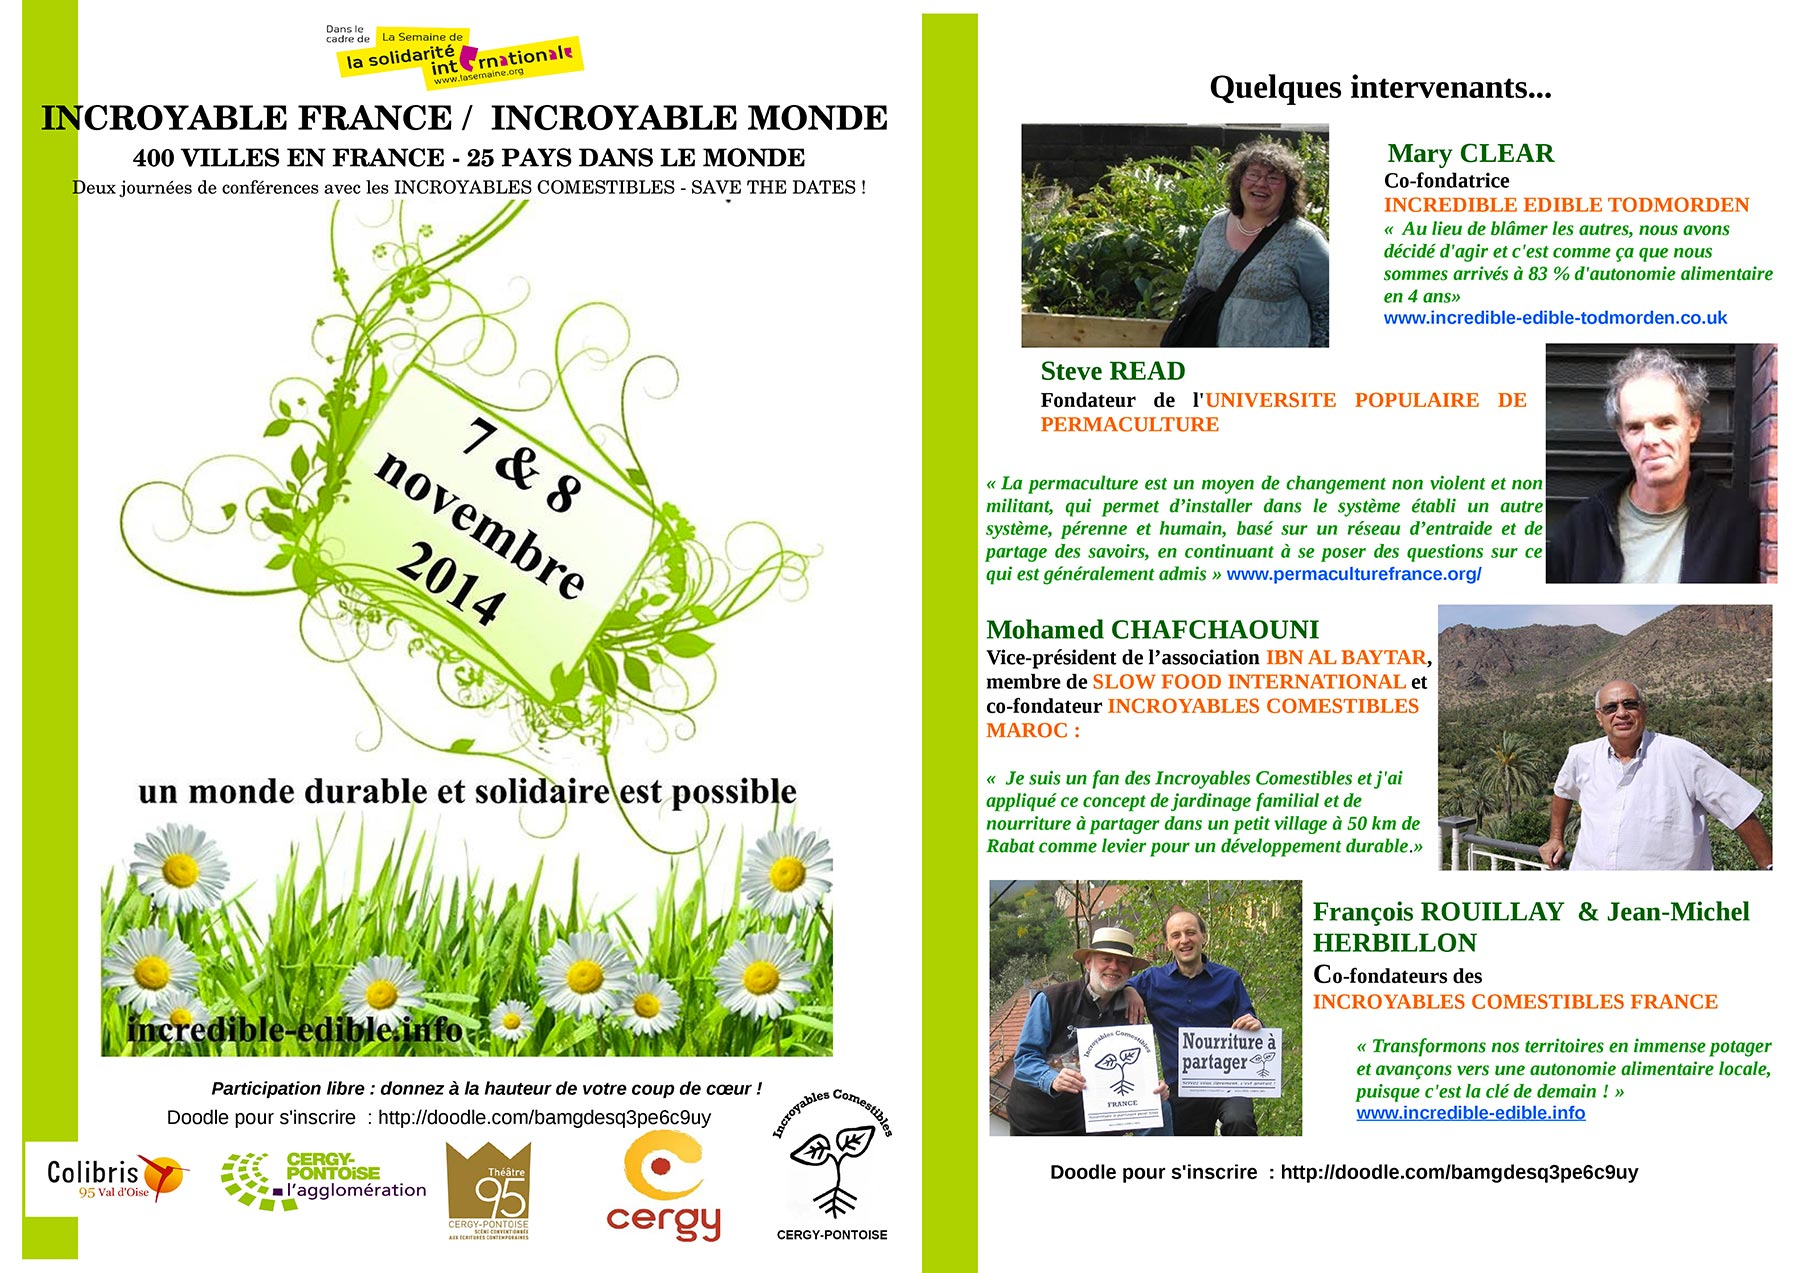 confrence_incroyables_comestibles_cergy_v2_w1800